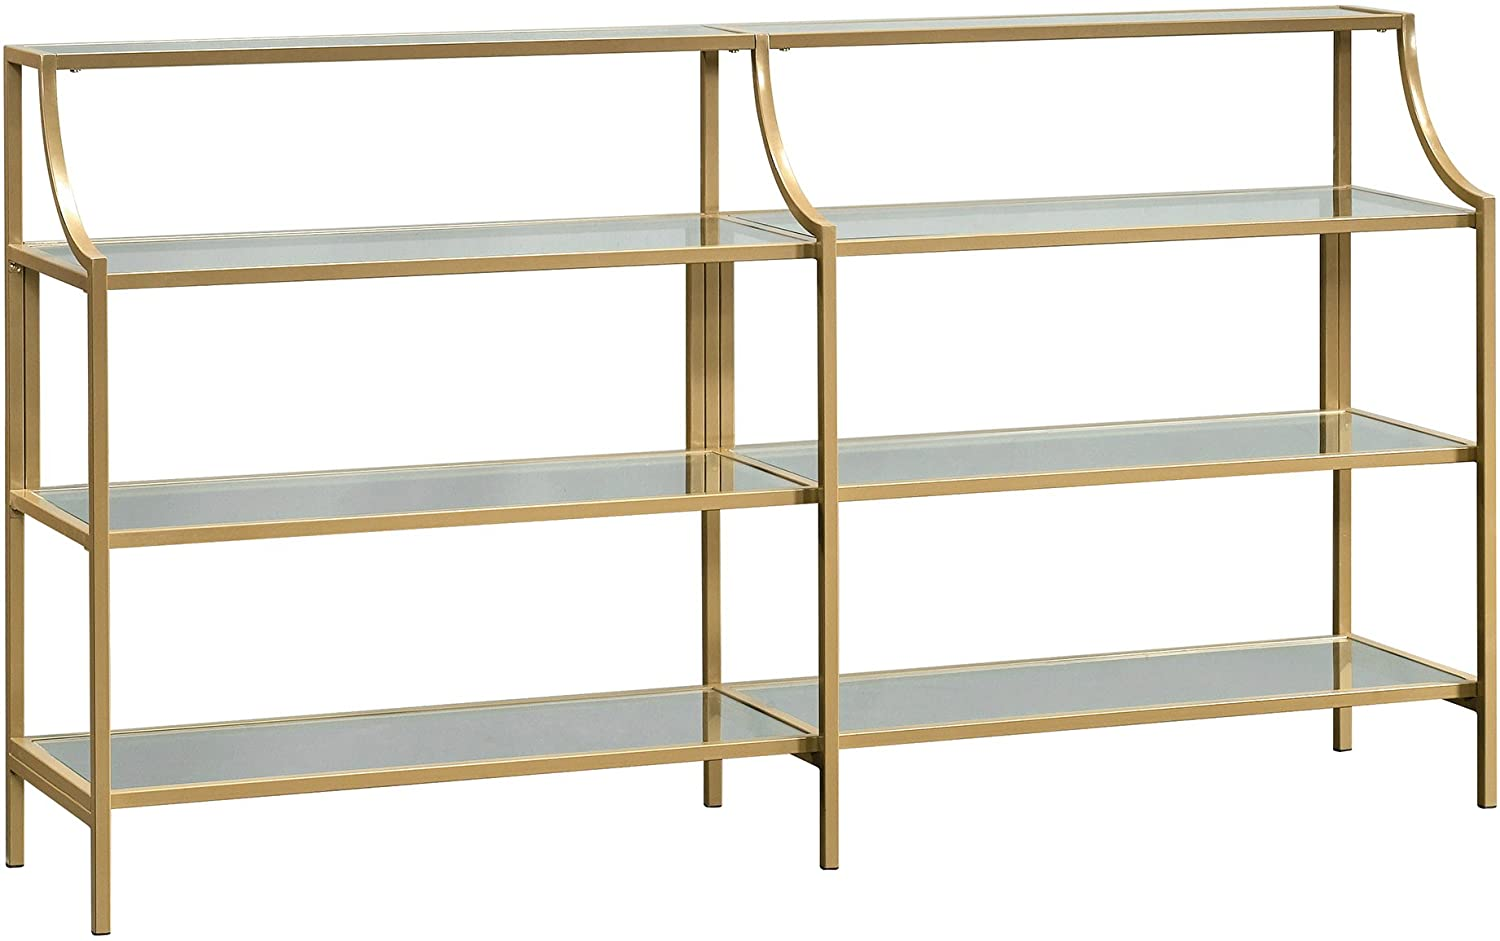 Sauder 424975 Curiod Console Satin Gold Max 70% OFF Table Ranking TOP18